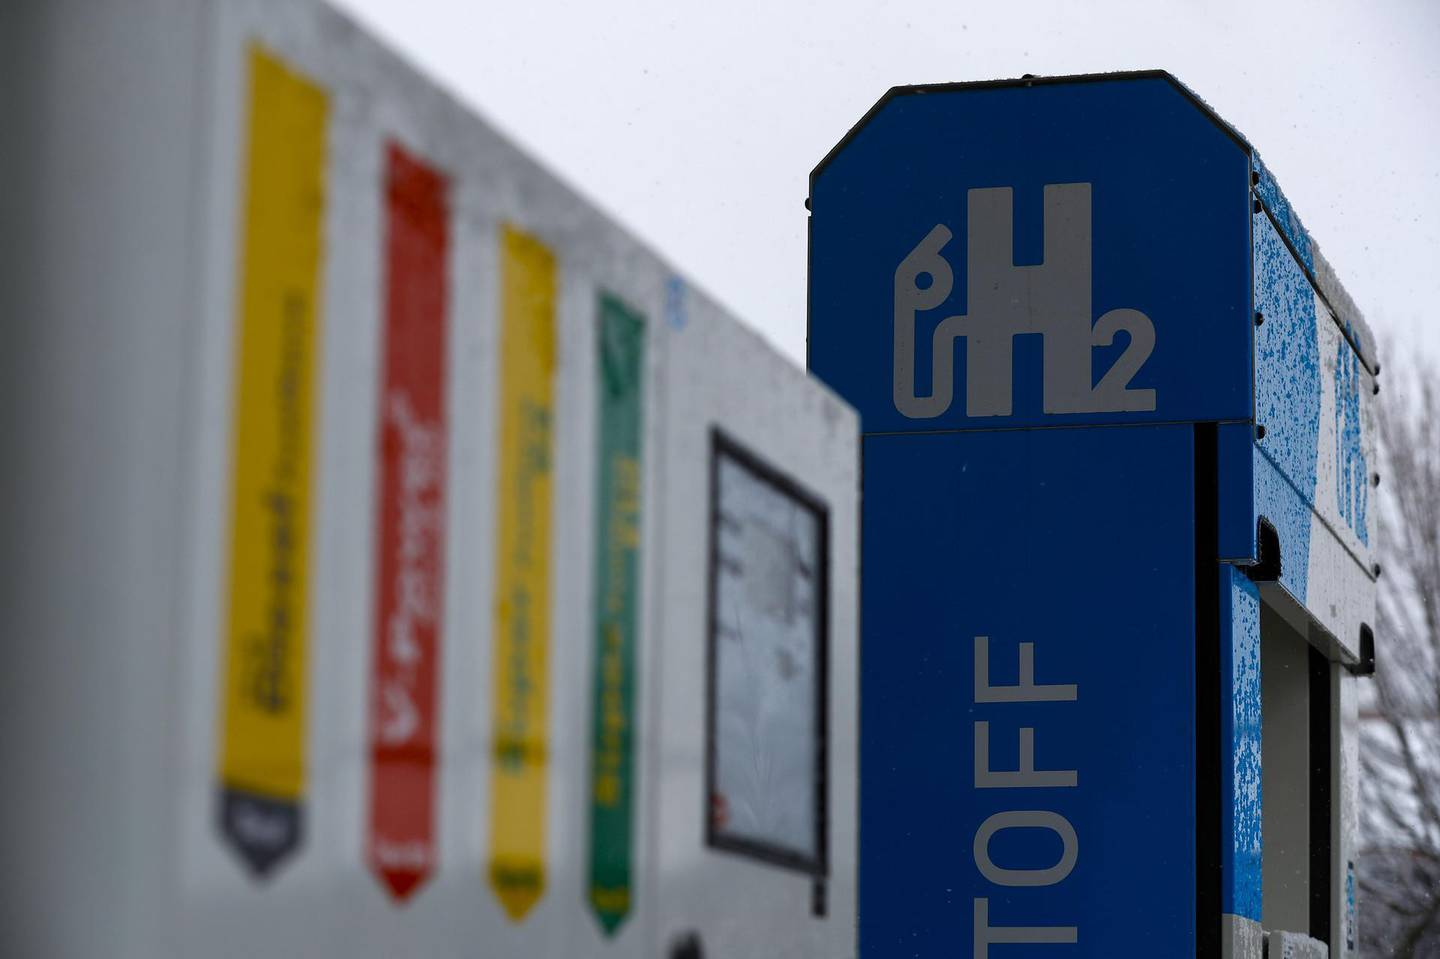 A hydrogen fuel pump stands on the forecourt of a Royal Dutch Shell Plc gas station in Sindelfingen, Germany, on Thursday, Feb. 26, 2020. Shipments of hydrogen fuel cells grew by more than 40% last year as proponents of the technology worked to establish it alongside lithium-ion batteries as a way to remove pollution from transportation. Photographer: Alex Kraus/Bloomberg